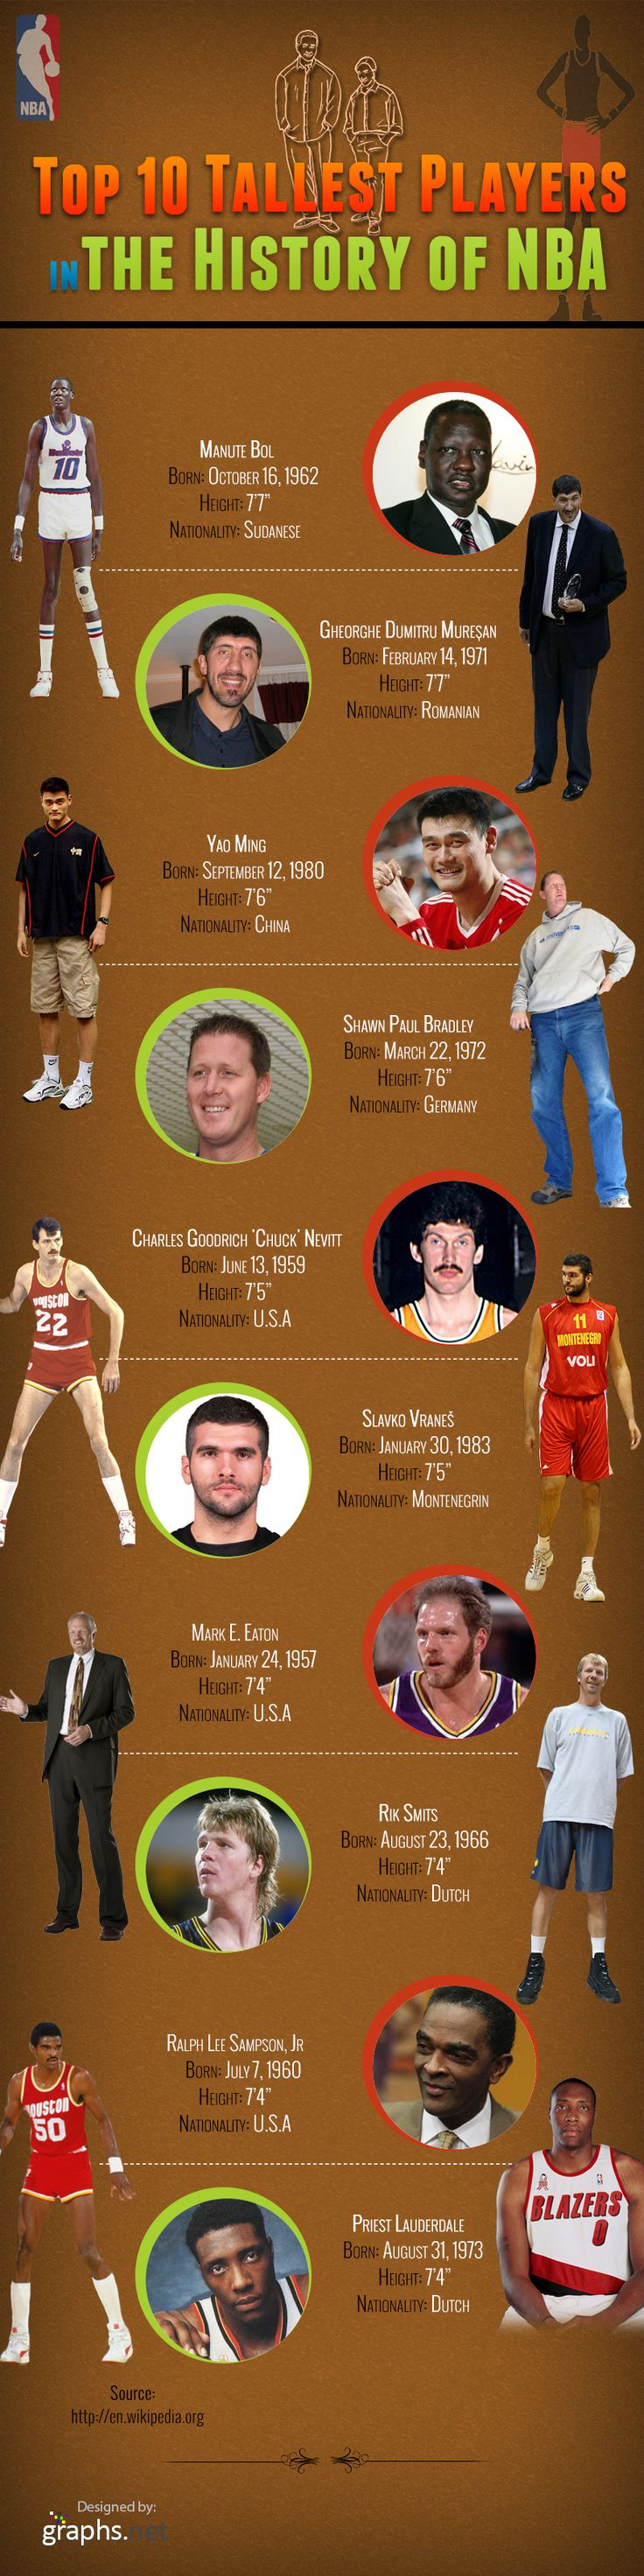 Top 10 Tallest Players In The History Of Nba